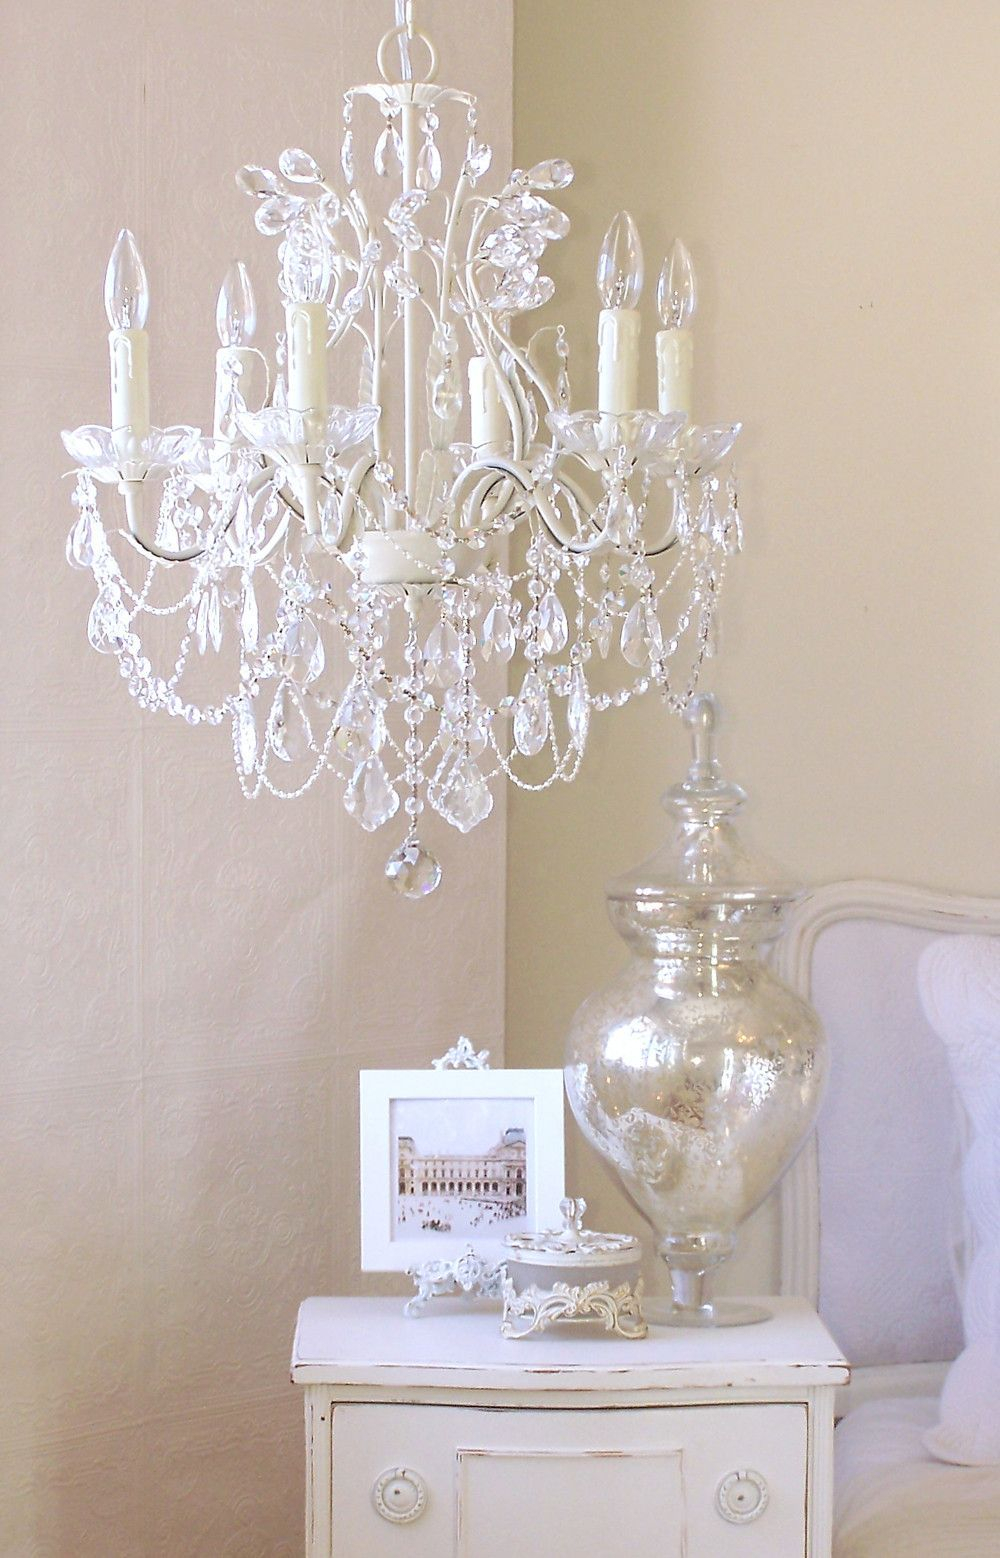 5-Light Antique White Chandelier With Pink Rose Shades inside Jill 4-Light Drum Chandeliers (Image 2 of 30)